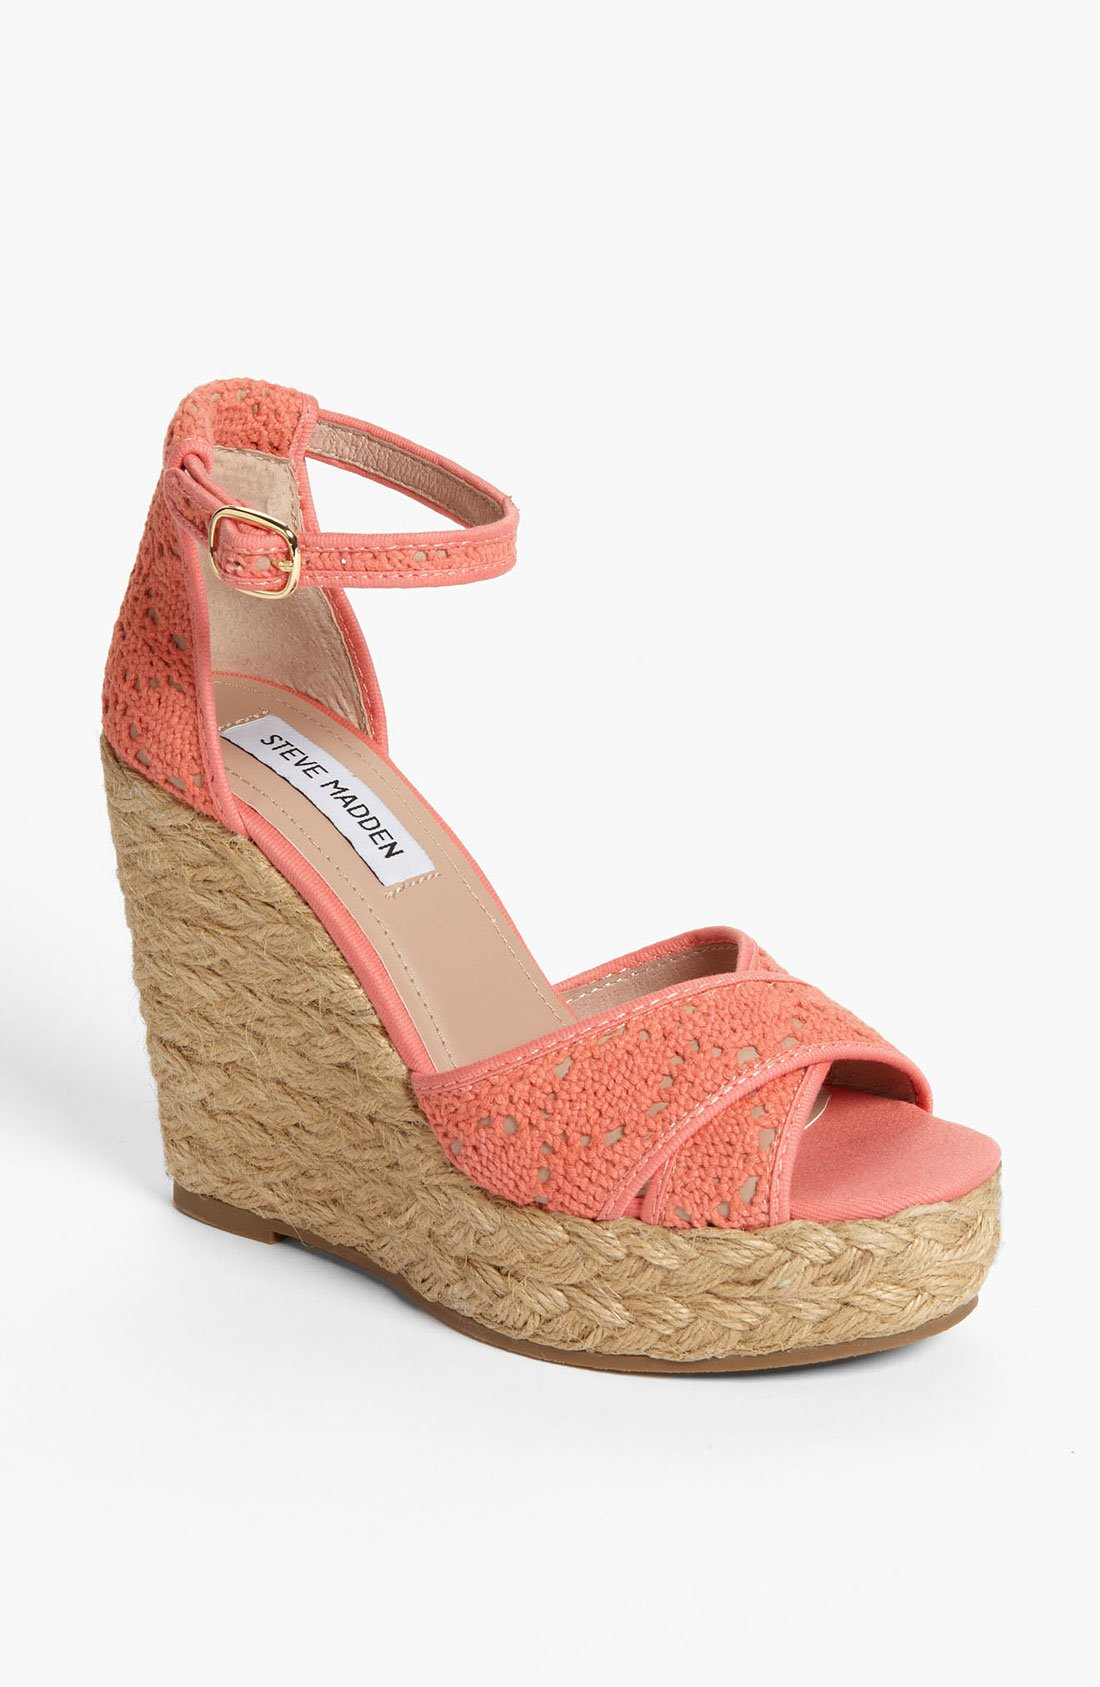 Steve Madden Espadrille Wedge In Pink Coral Lyst